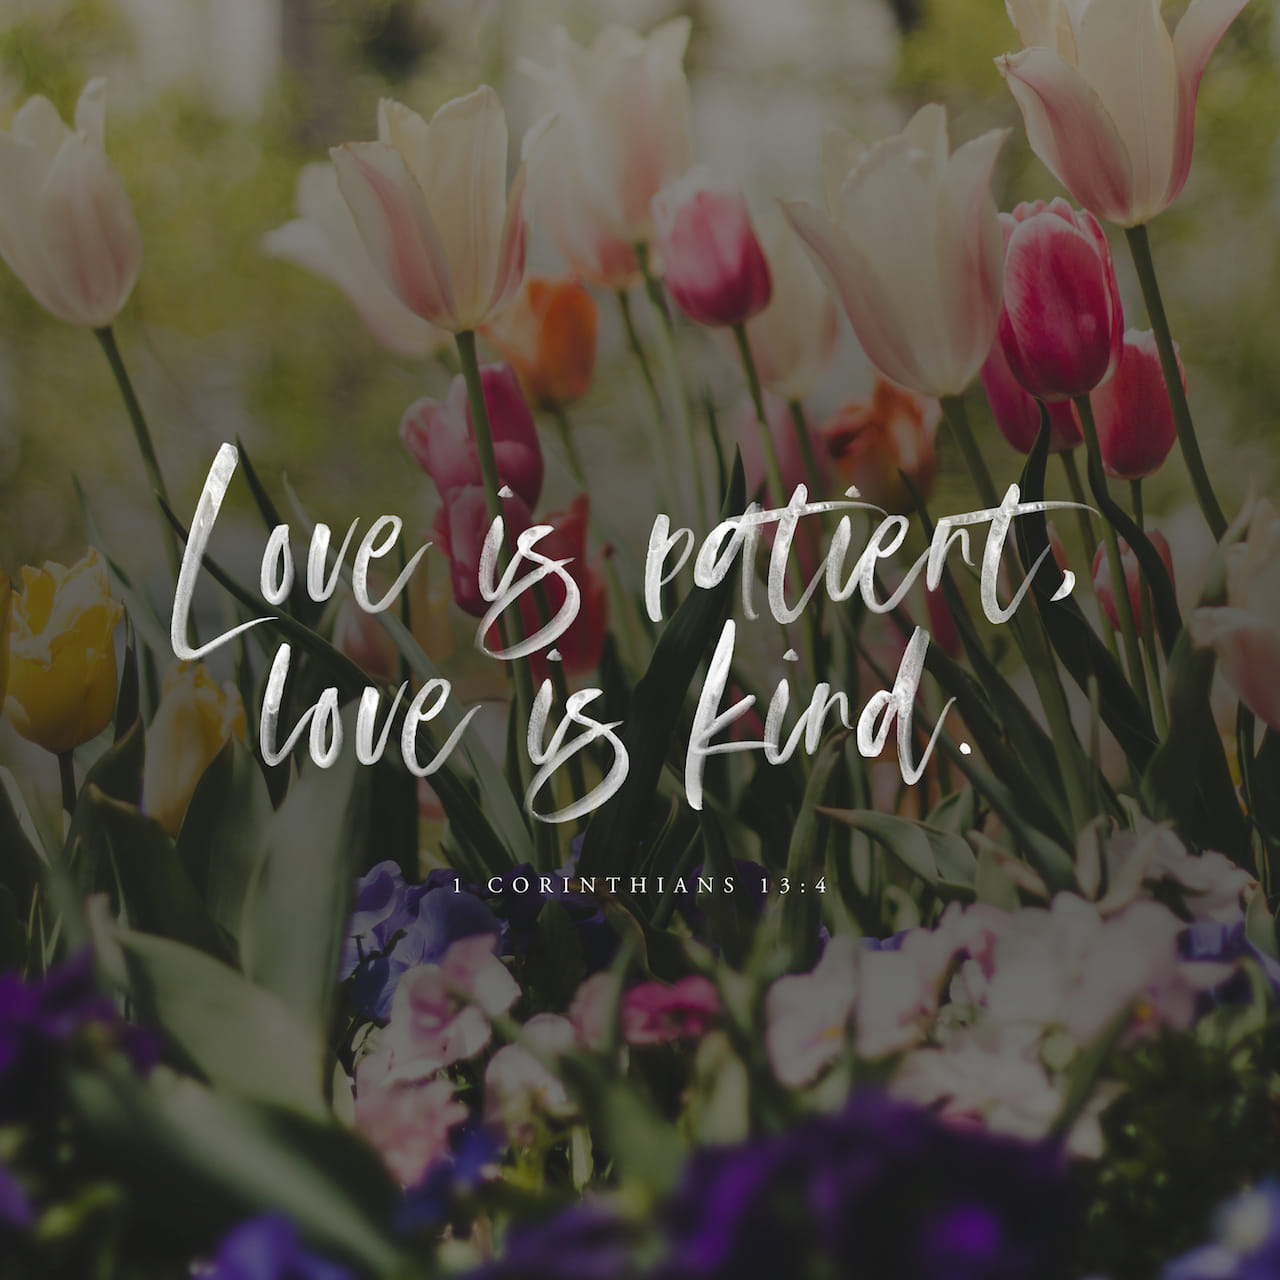 1 Corinthians 13:4-13 Love is patient and kind. Love is not jealous or boastful or proud or rude. It does not demand its own way. It is not irritable, and it keeps no record of being wronged. It does not rejoice about inju | New Living Translation (NLT)